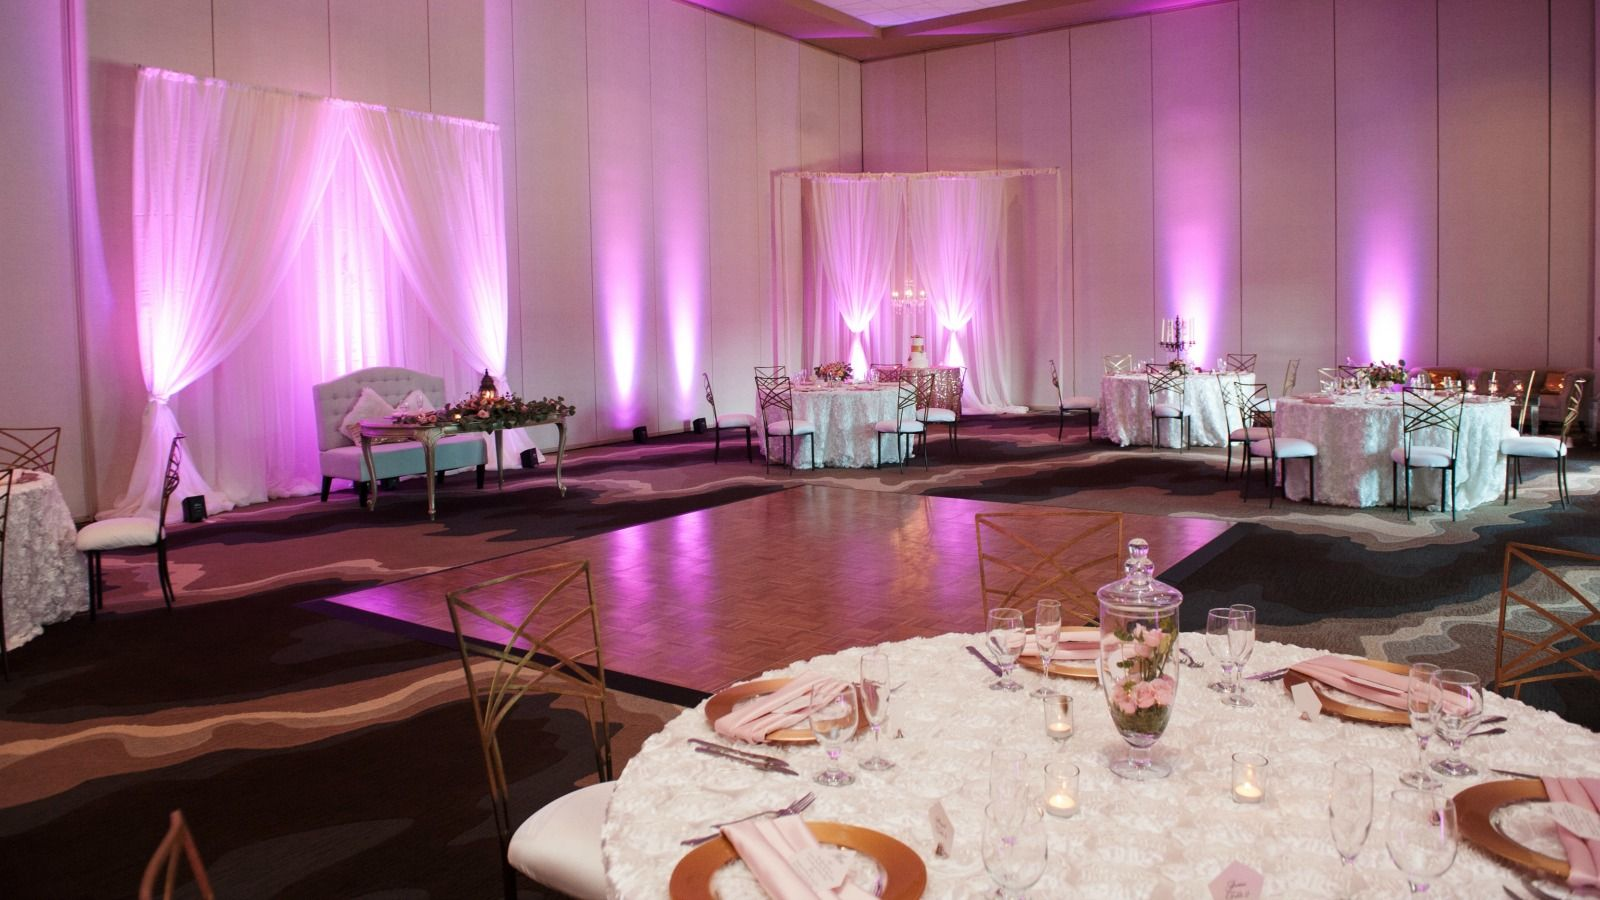 Wedding Venues in Phoenix - Wedding Venue